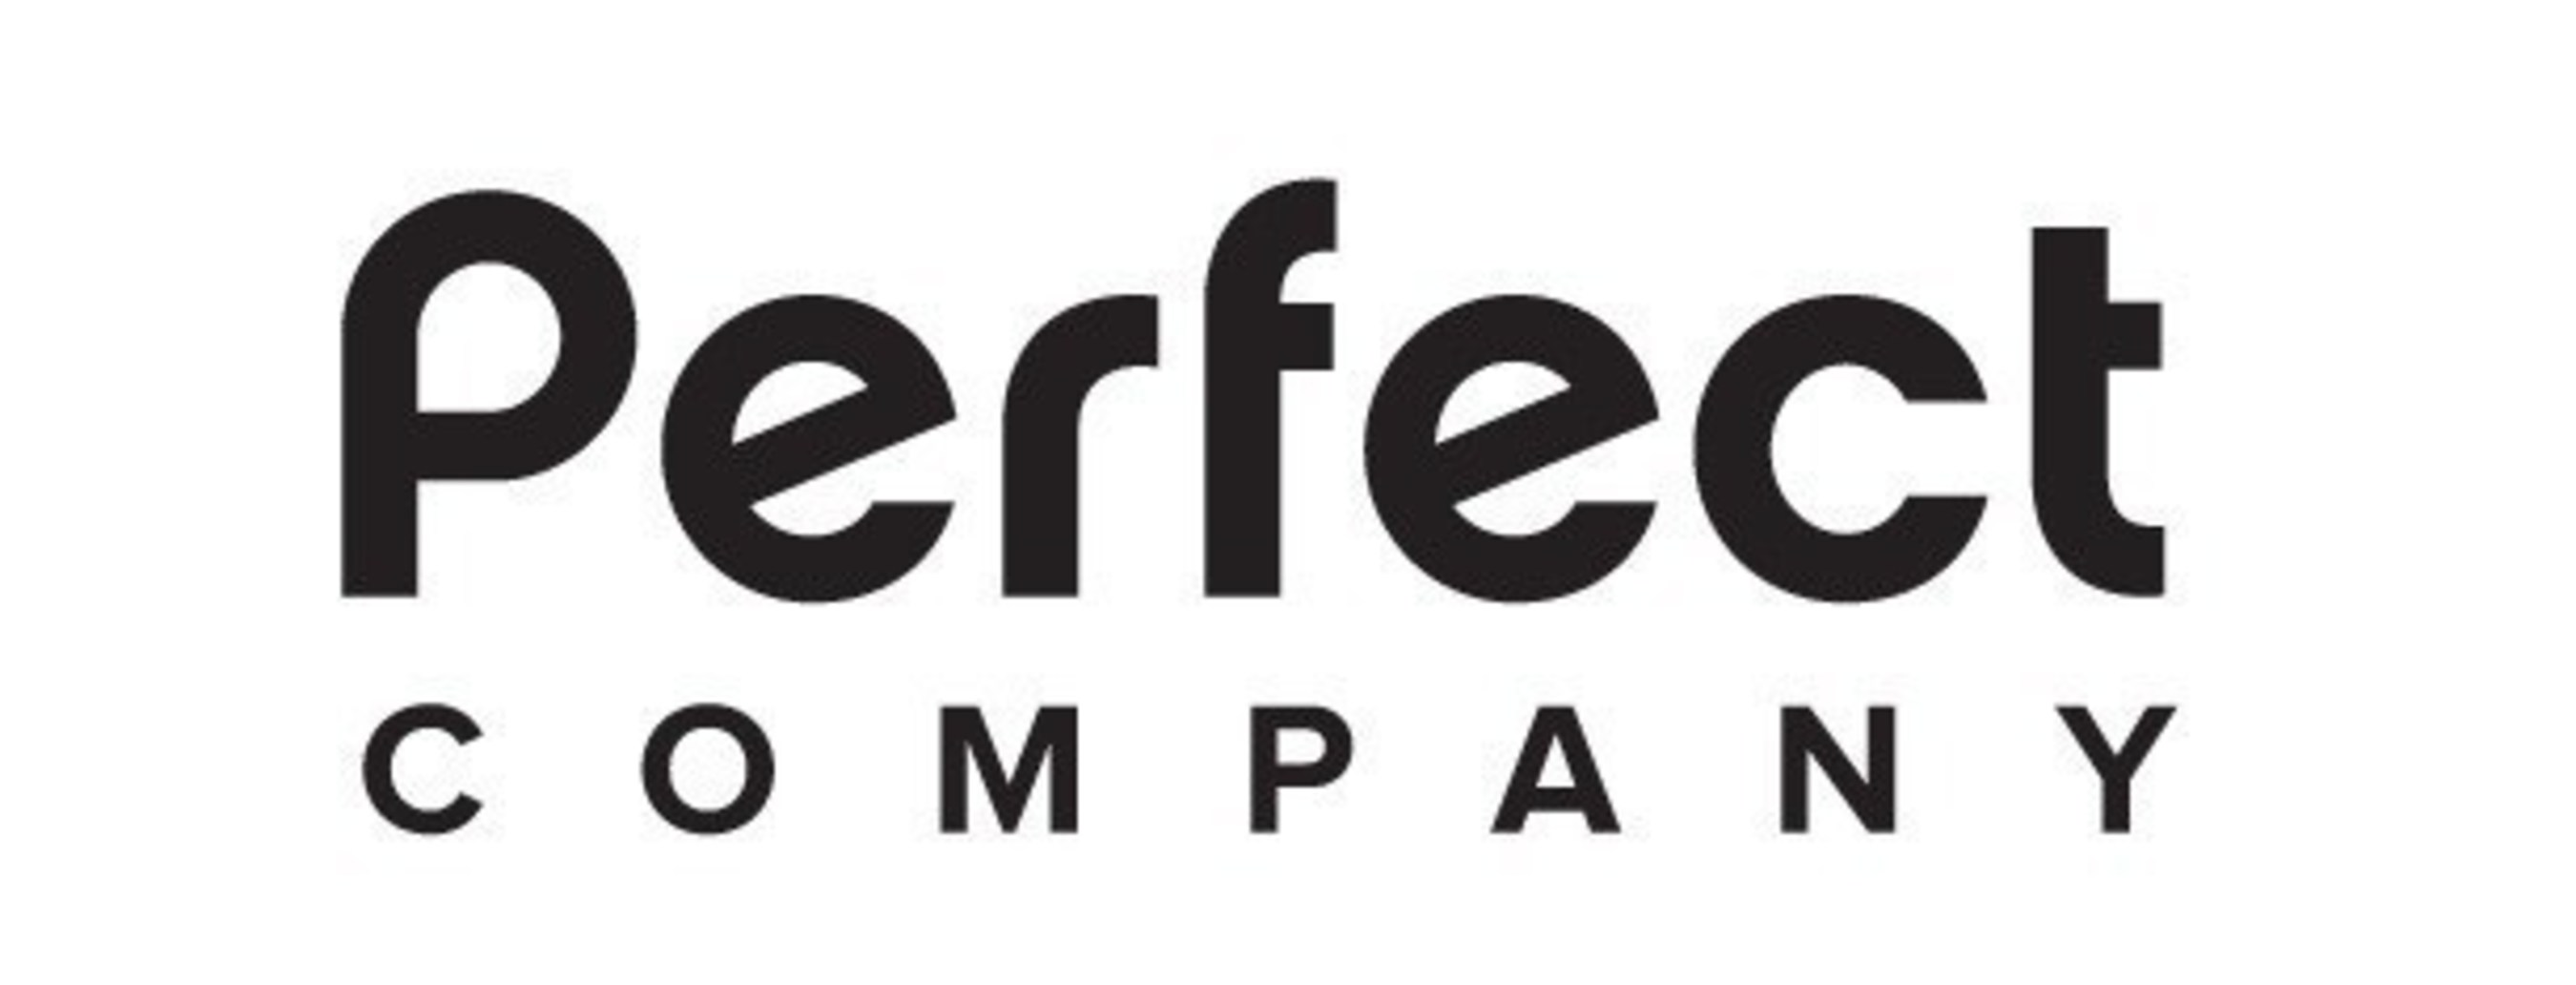 Perfect Company Introduces Perfect Blend' At CES' 2016, A Smarter, More Nutritional Approach To Blending At Home